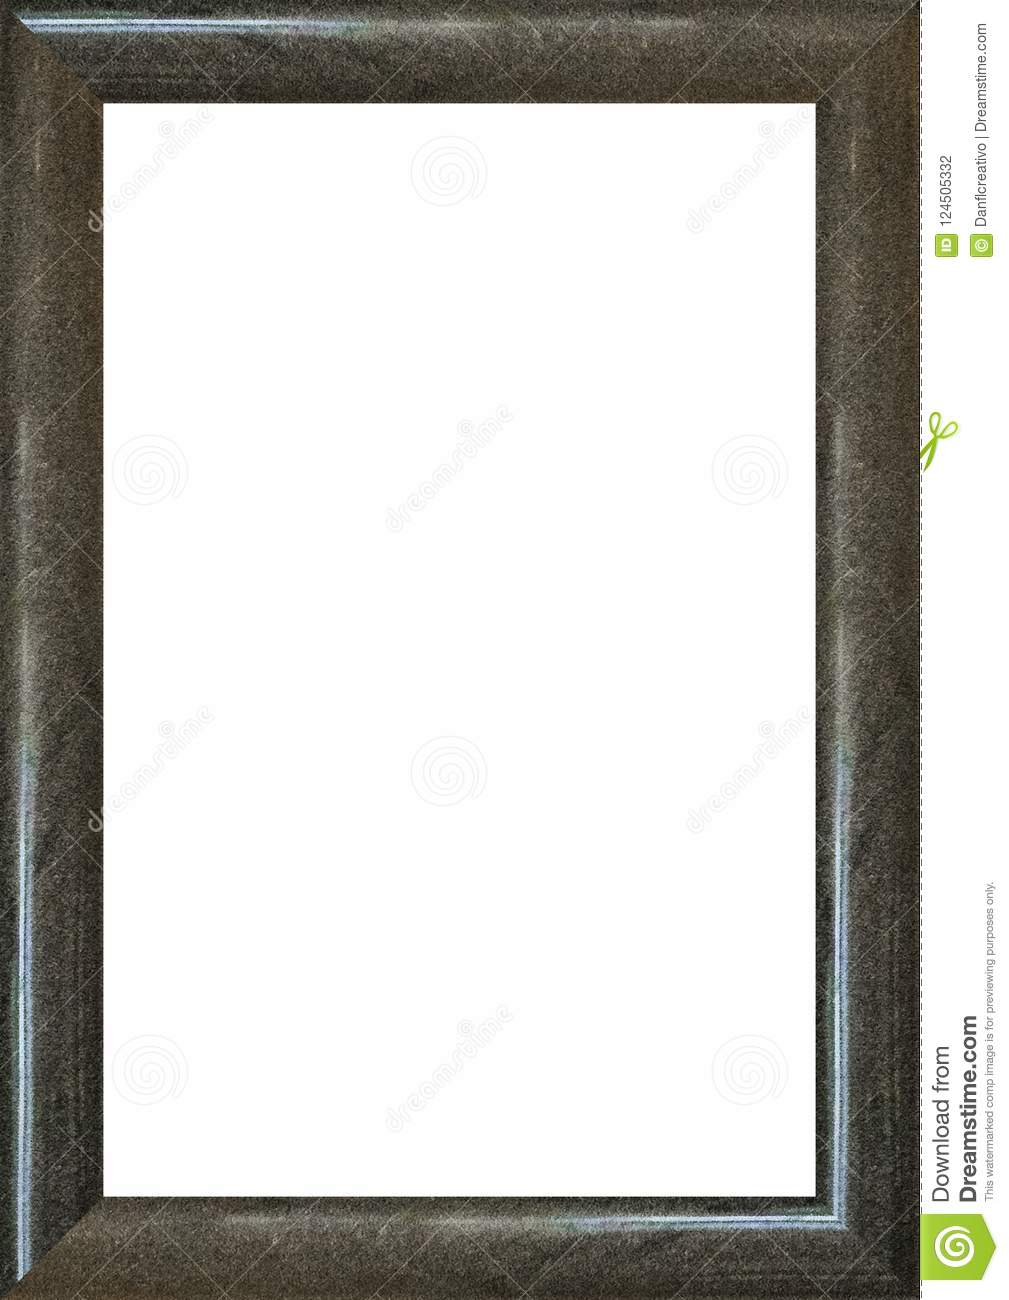 Portrait Blank Frame With Dark Marble Borders Stock Photo - Image of ...